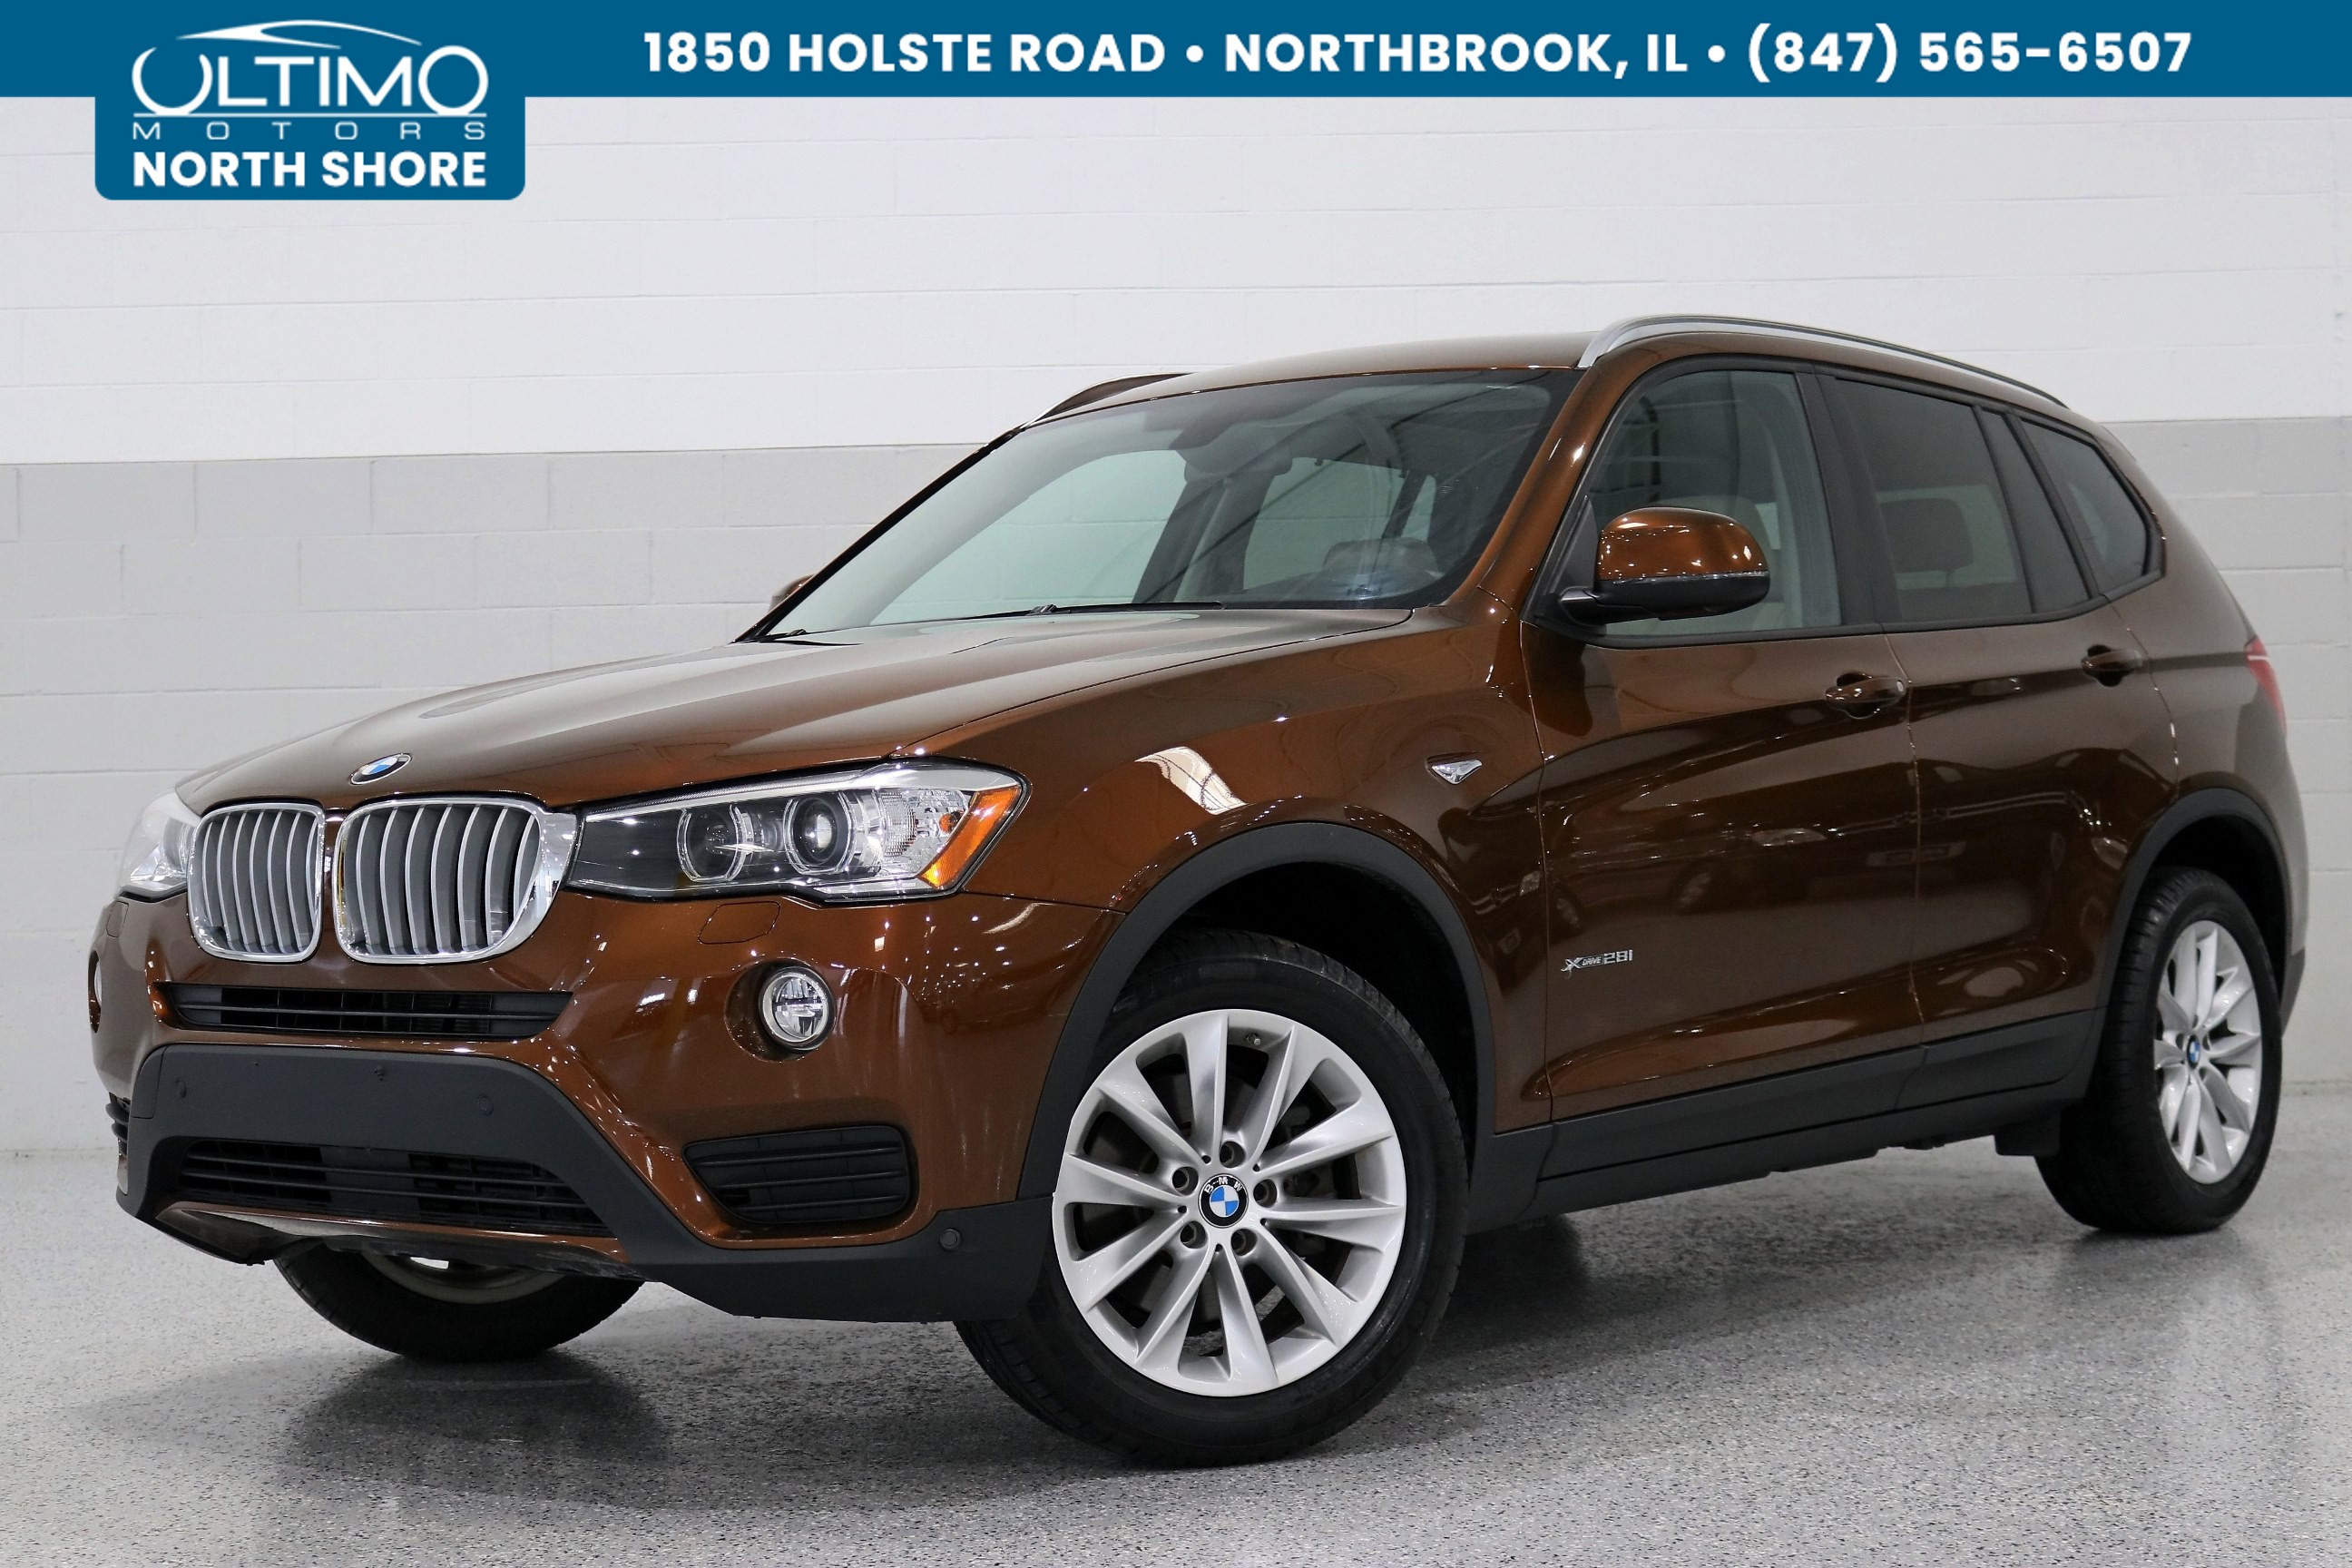 Pre-Owned 2017 BMW X3 xDrive28i, Driving Assistance, Premium, Lighting, Technology, Hi-fi Sound.